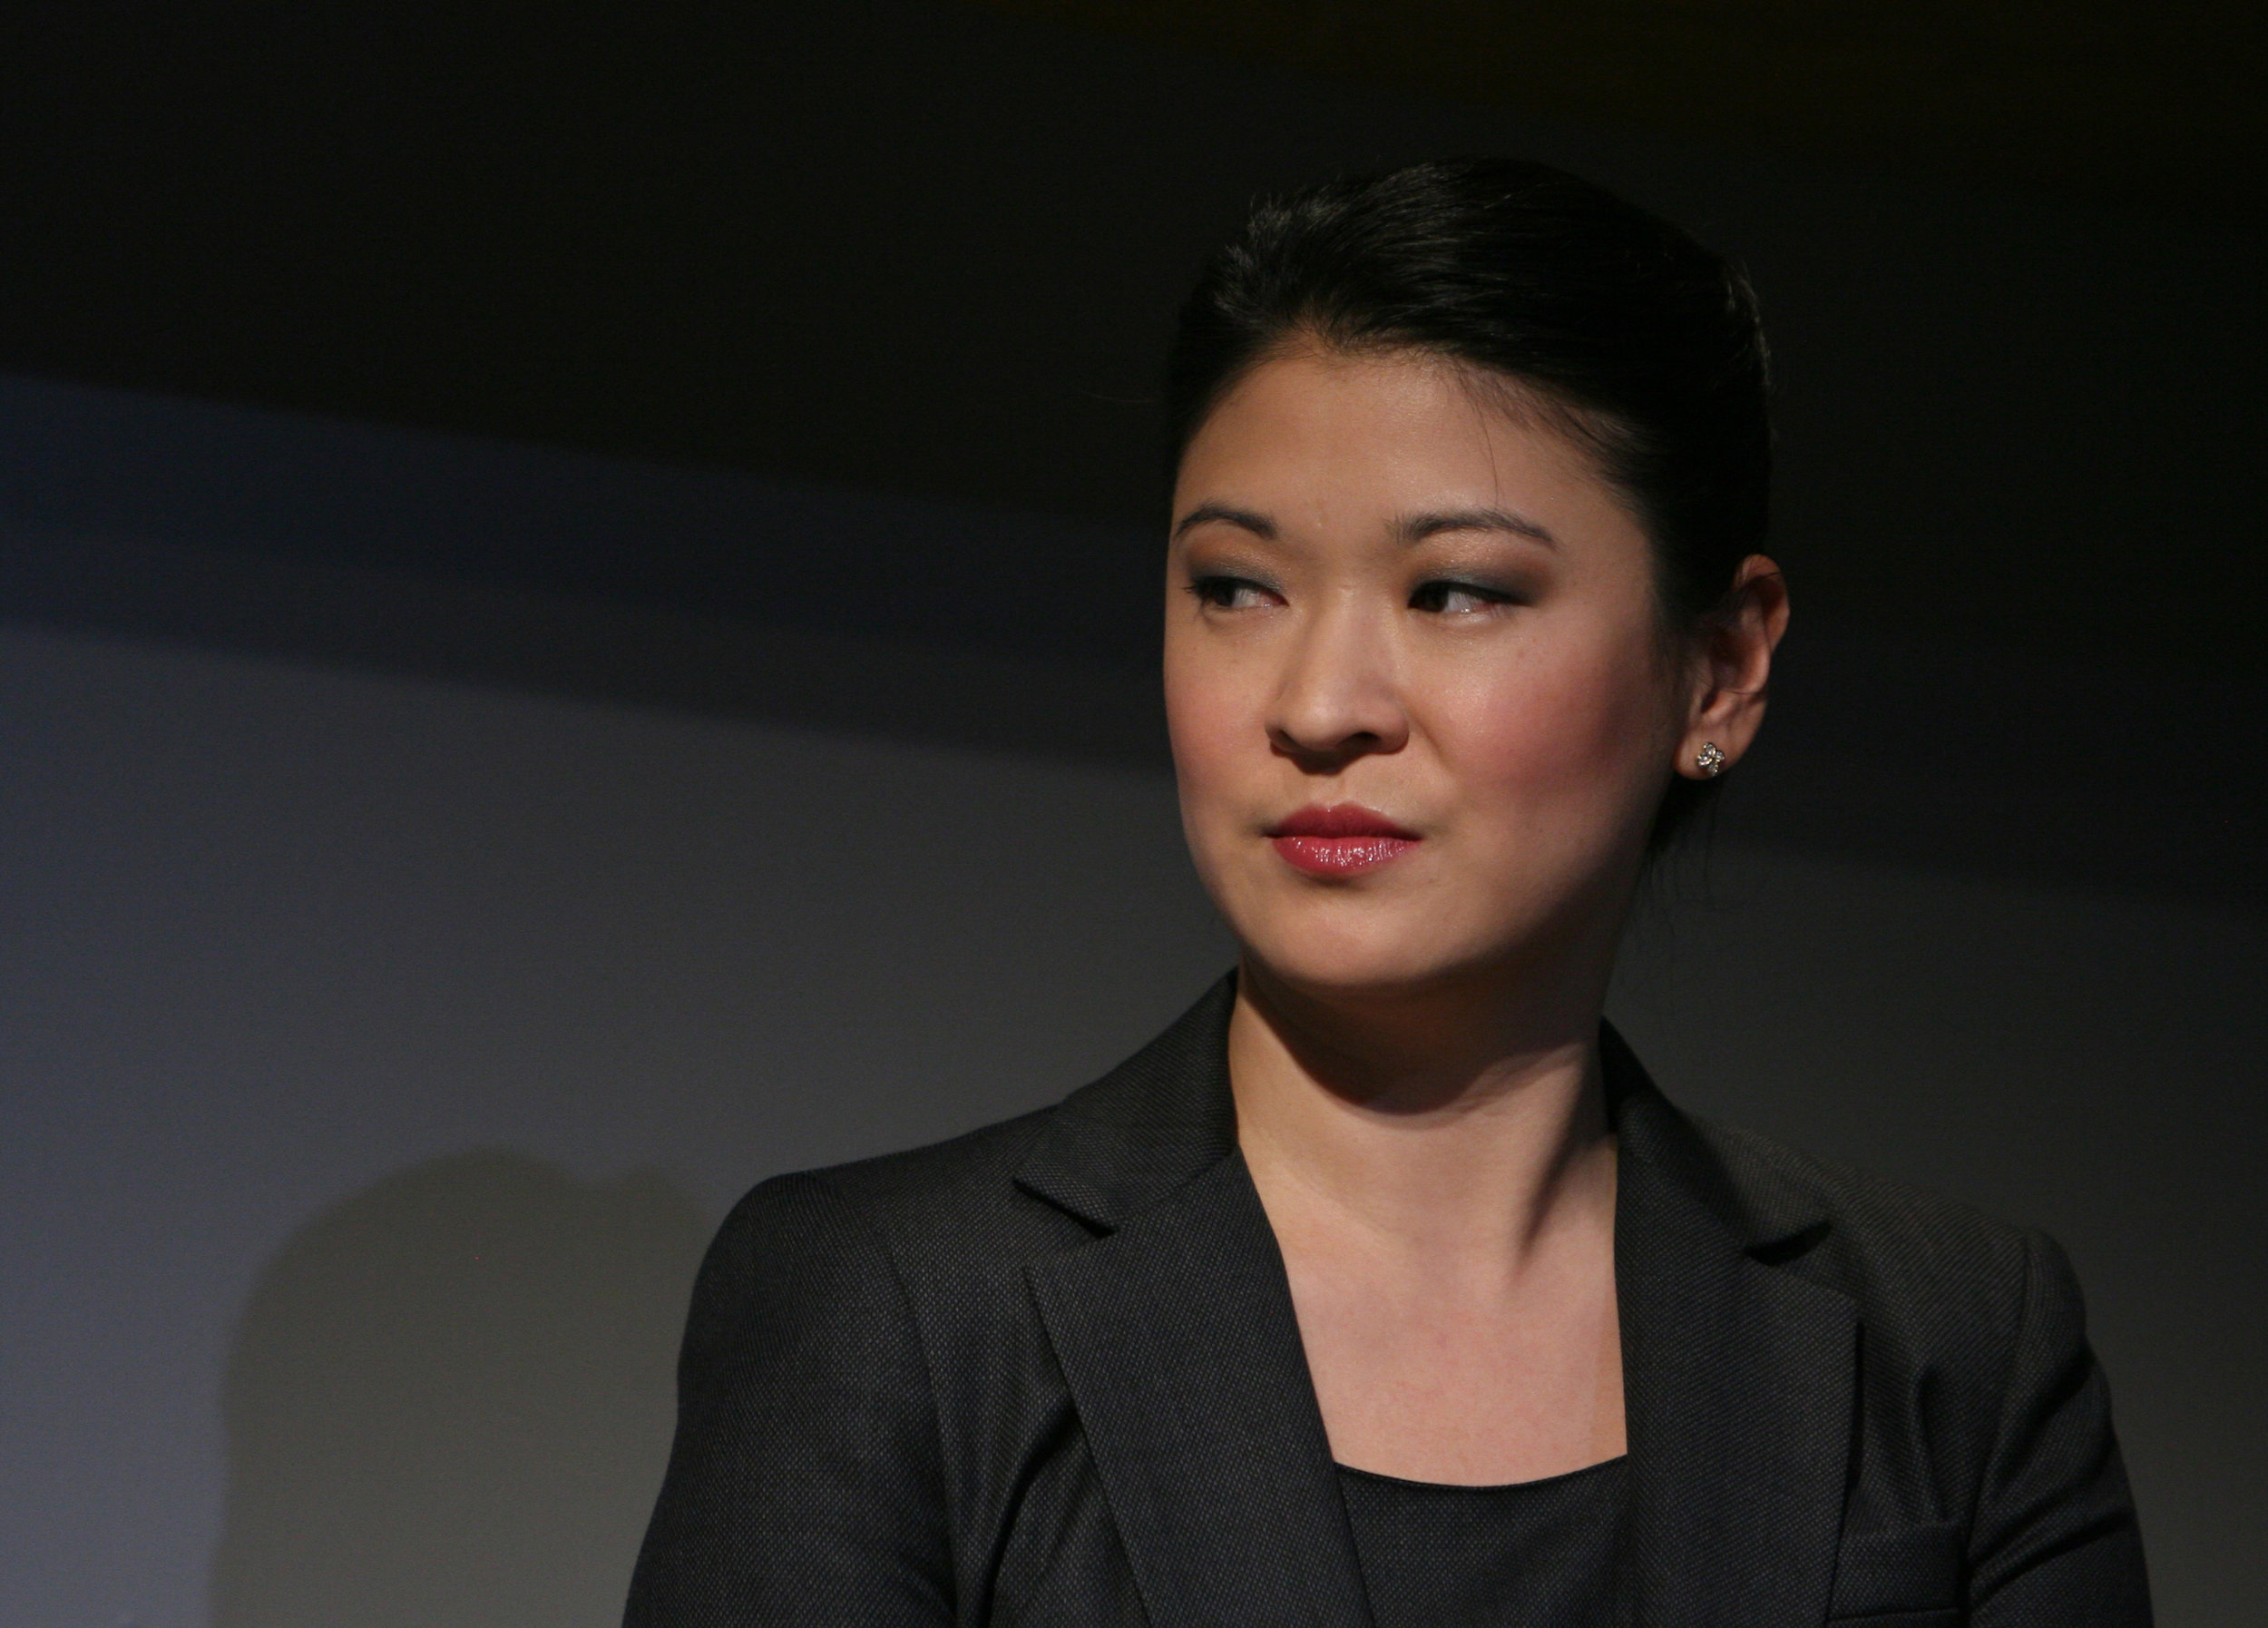 Jennifer Lim. Photo by Eric Y. Exit for the Goodman Theatre, 2011